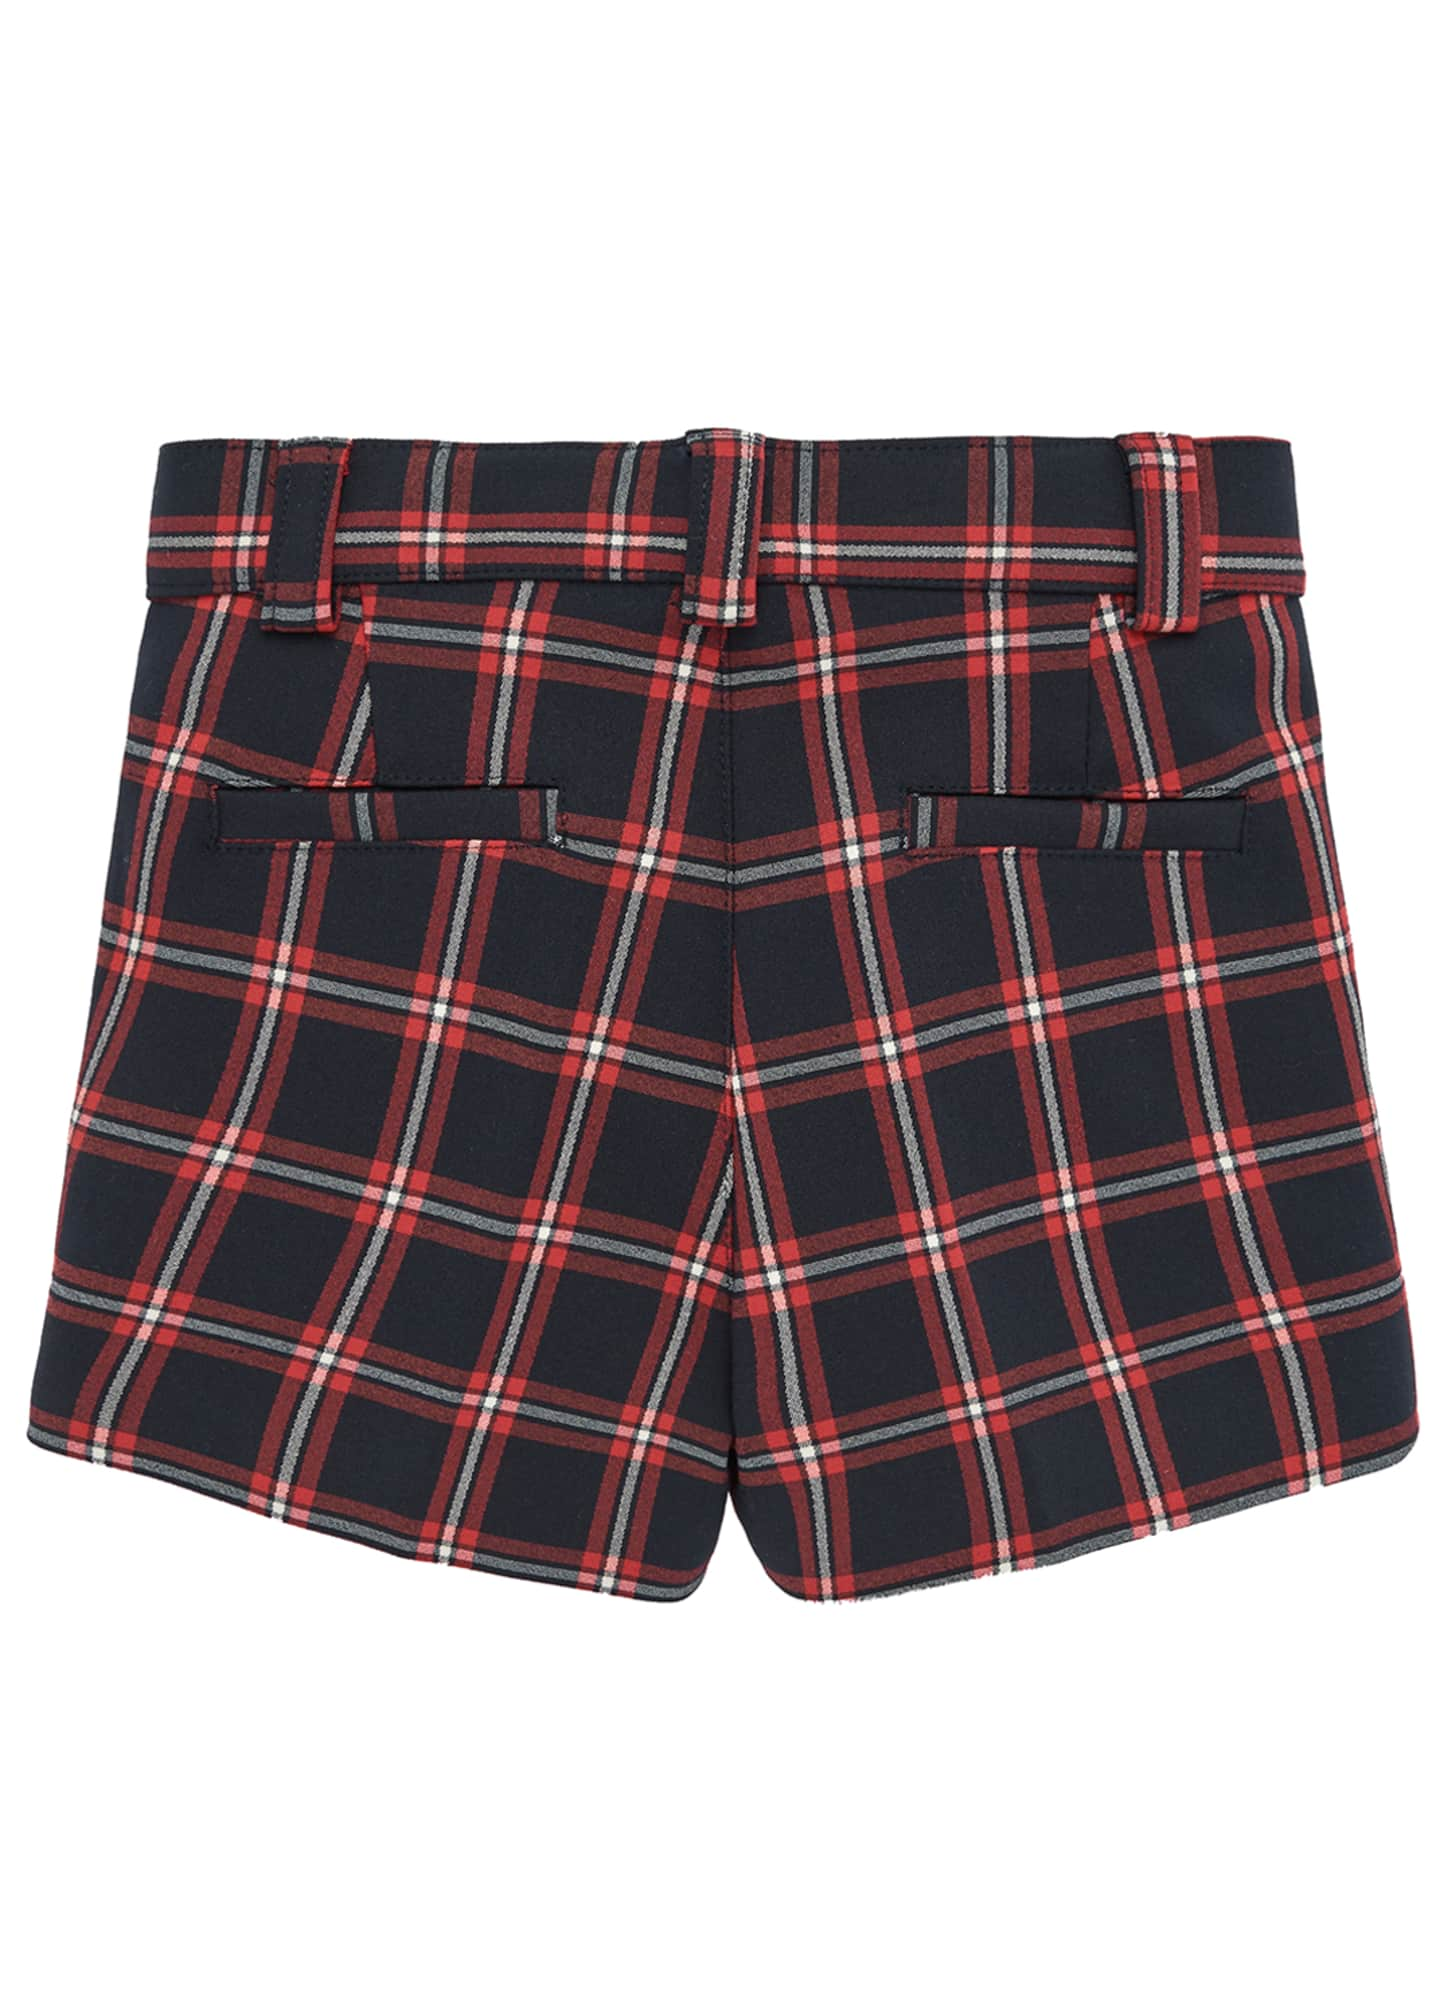 Image 2 of 3: Boy's Check Shorts, Size 2-4